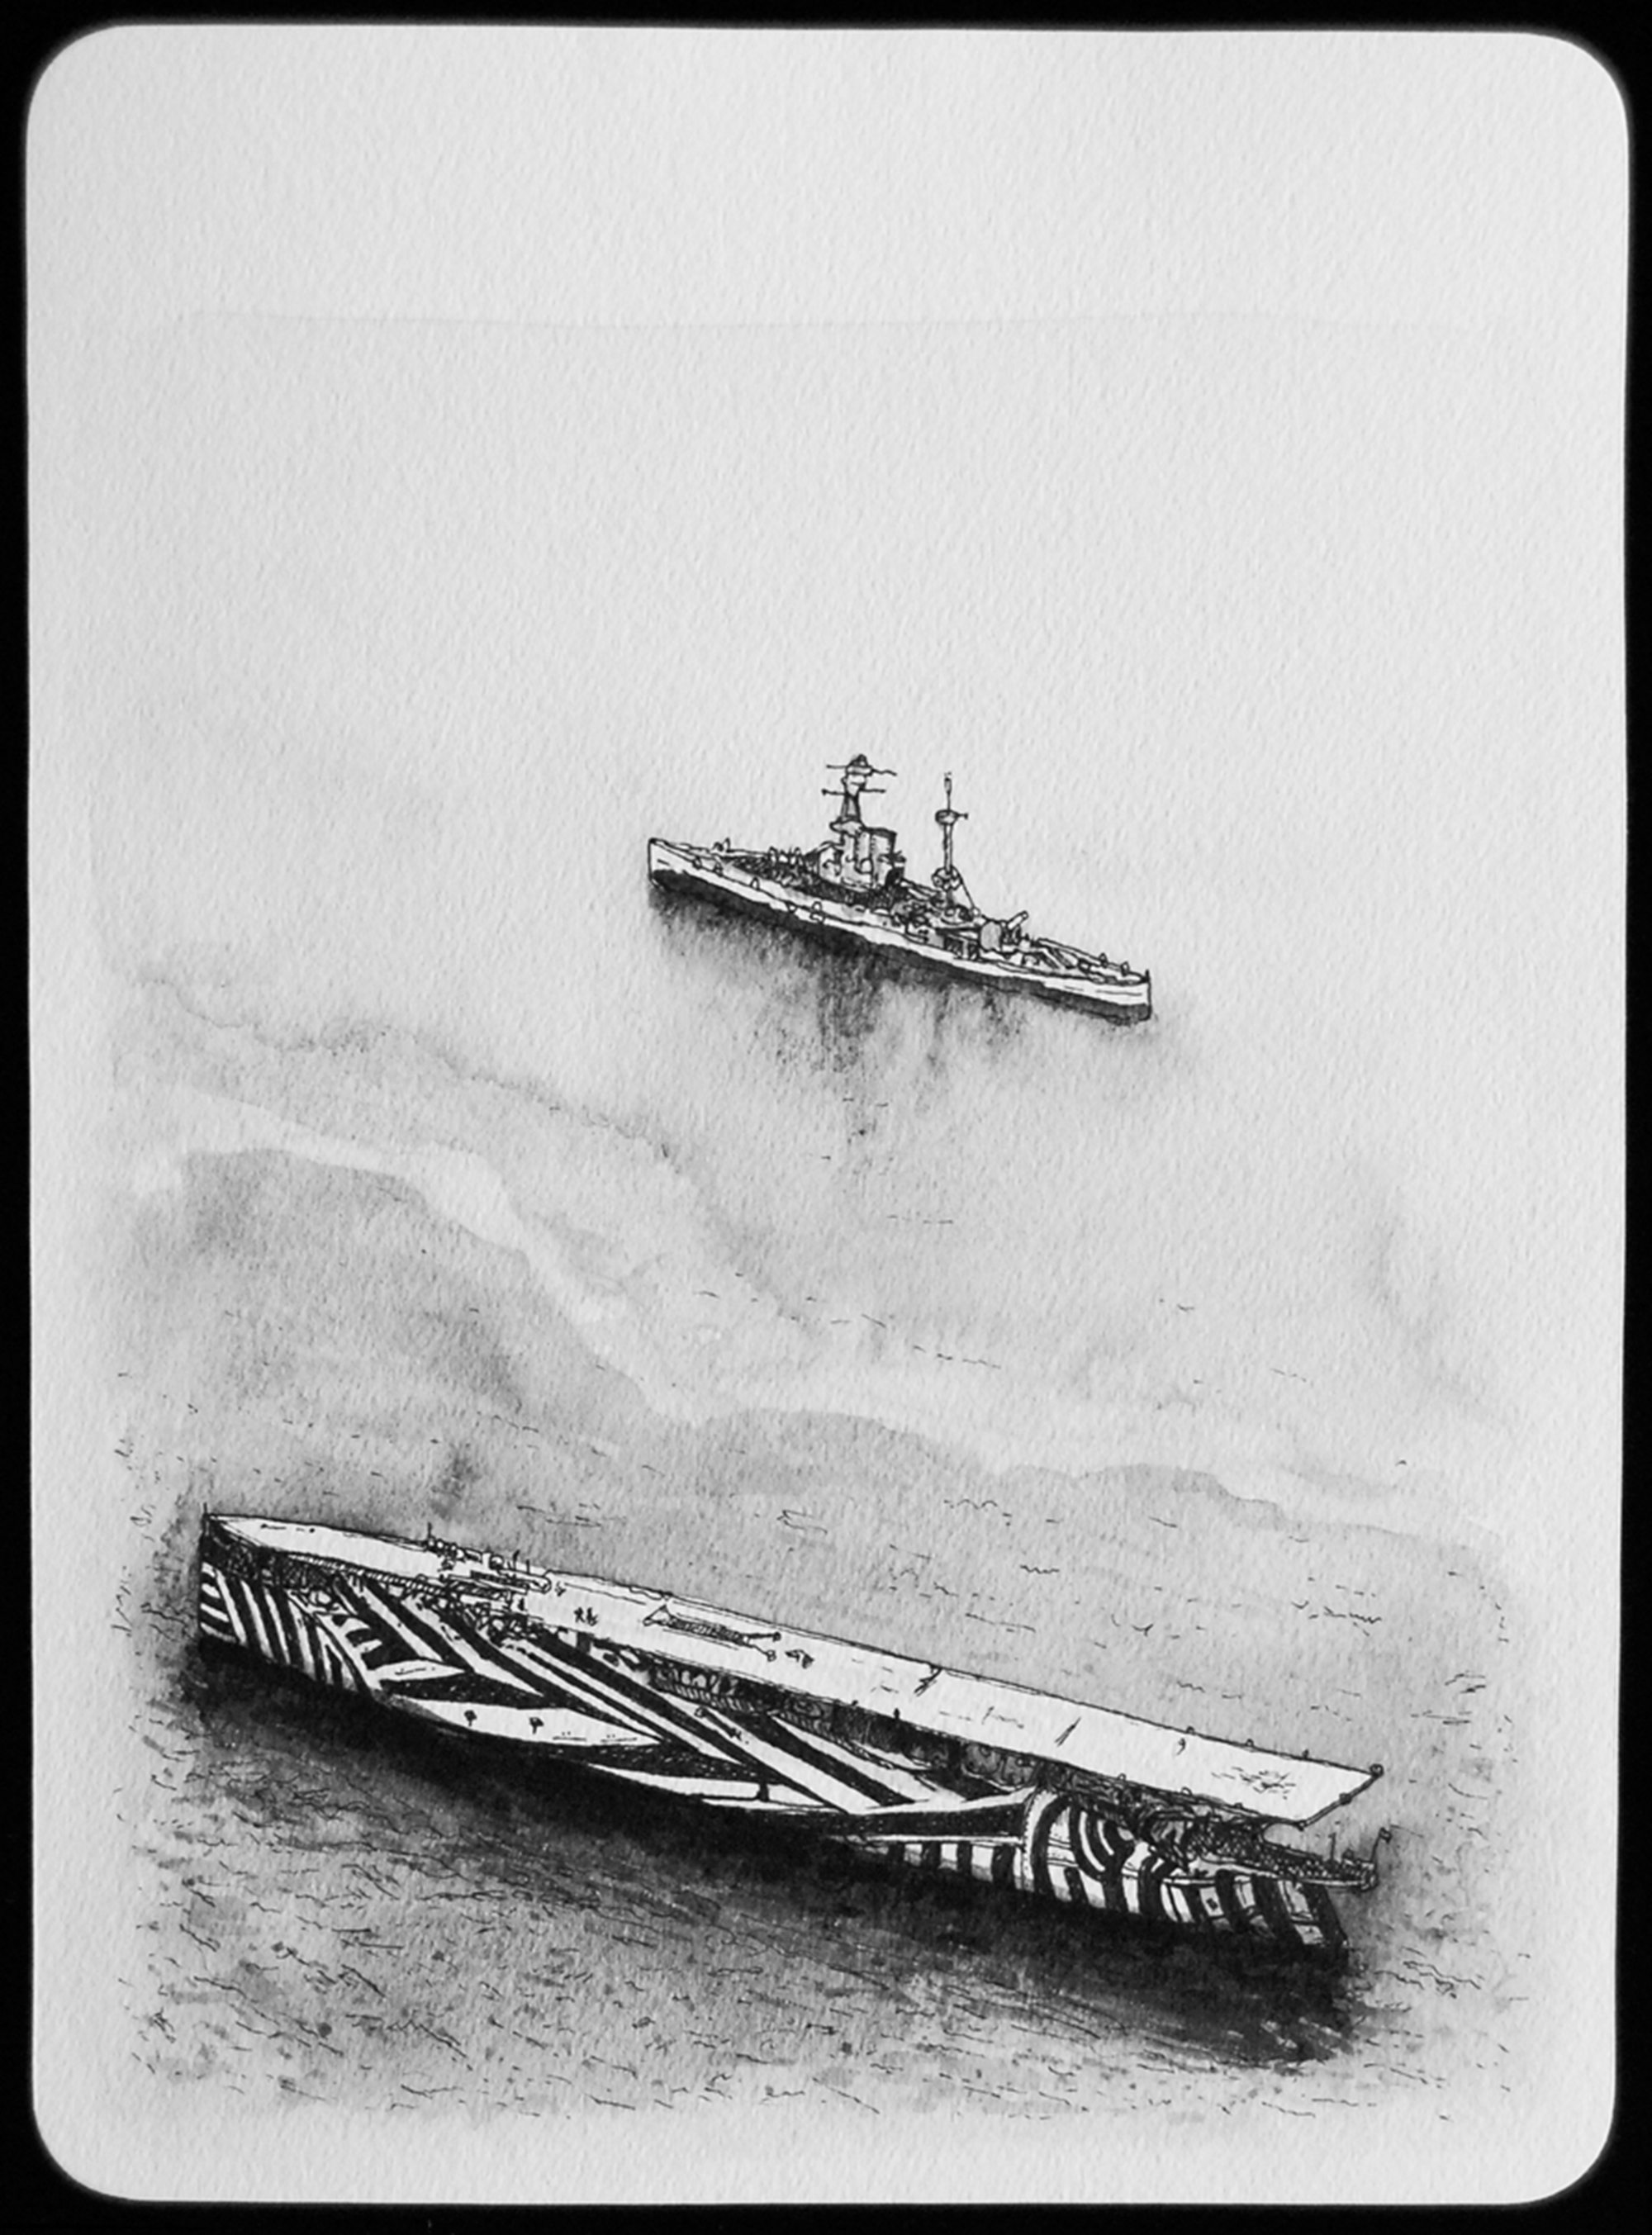 Razzle Dazzle camouflage, French naval ship, WWI, 2011  |  11 x 8 inches  |  archival ink and gouache on paper